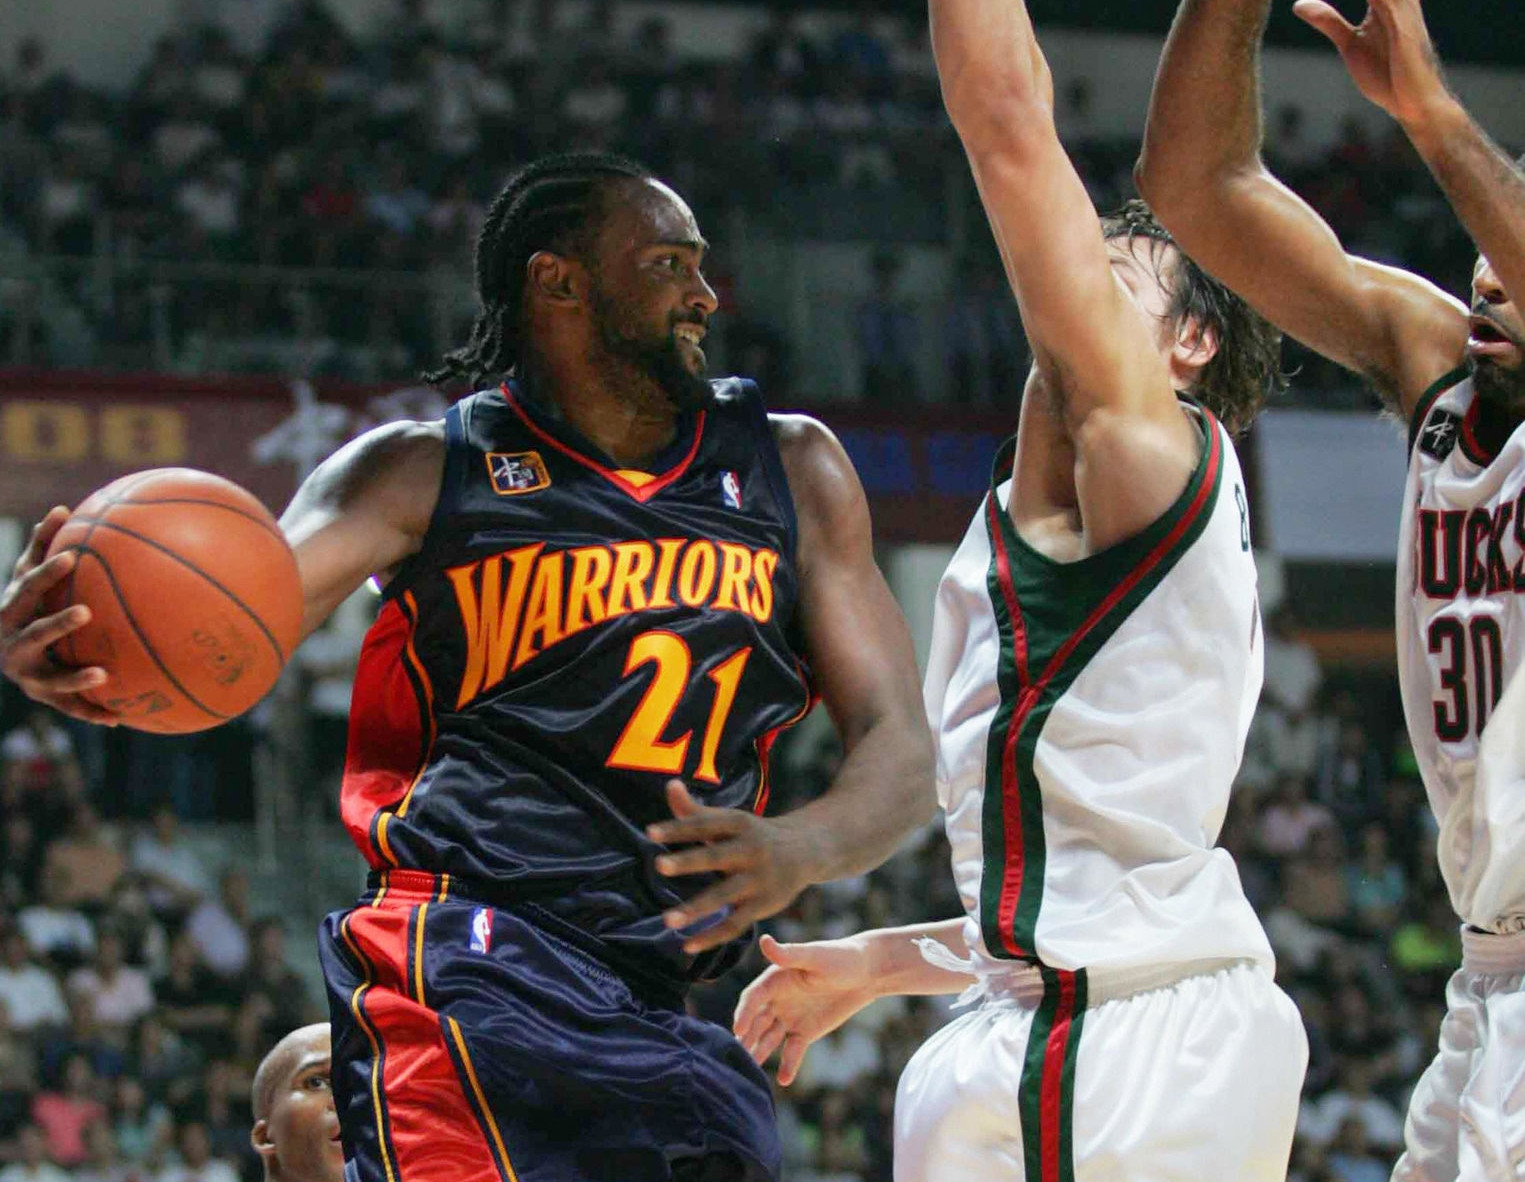 Tonny Turiaf, Golden State Warriors